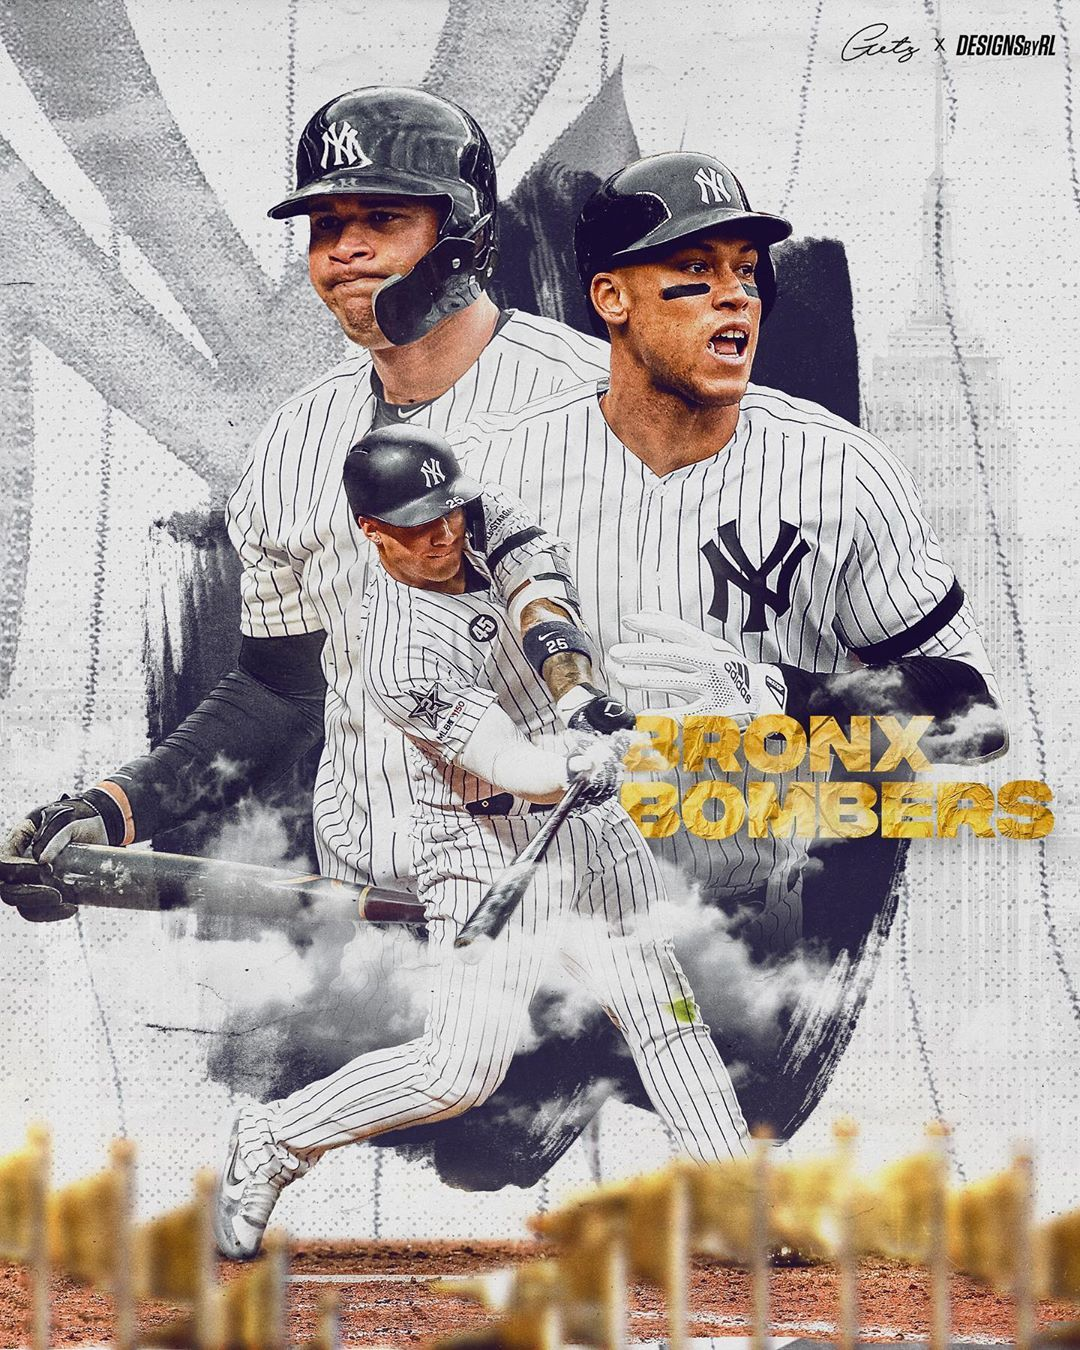 Ryan Lane On Instagram Baseball Is Back The Yankees Take On The Nationals Tonight Collab With My Guy Getzgfx Go Check Him O